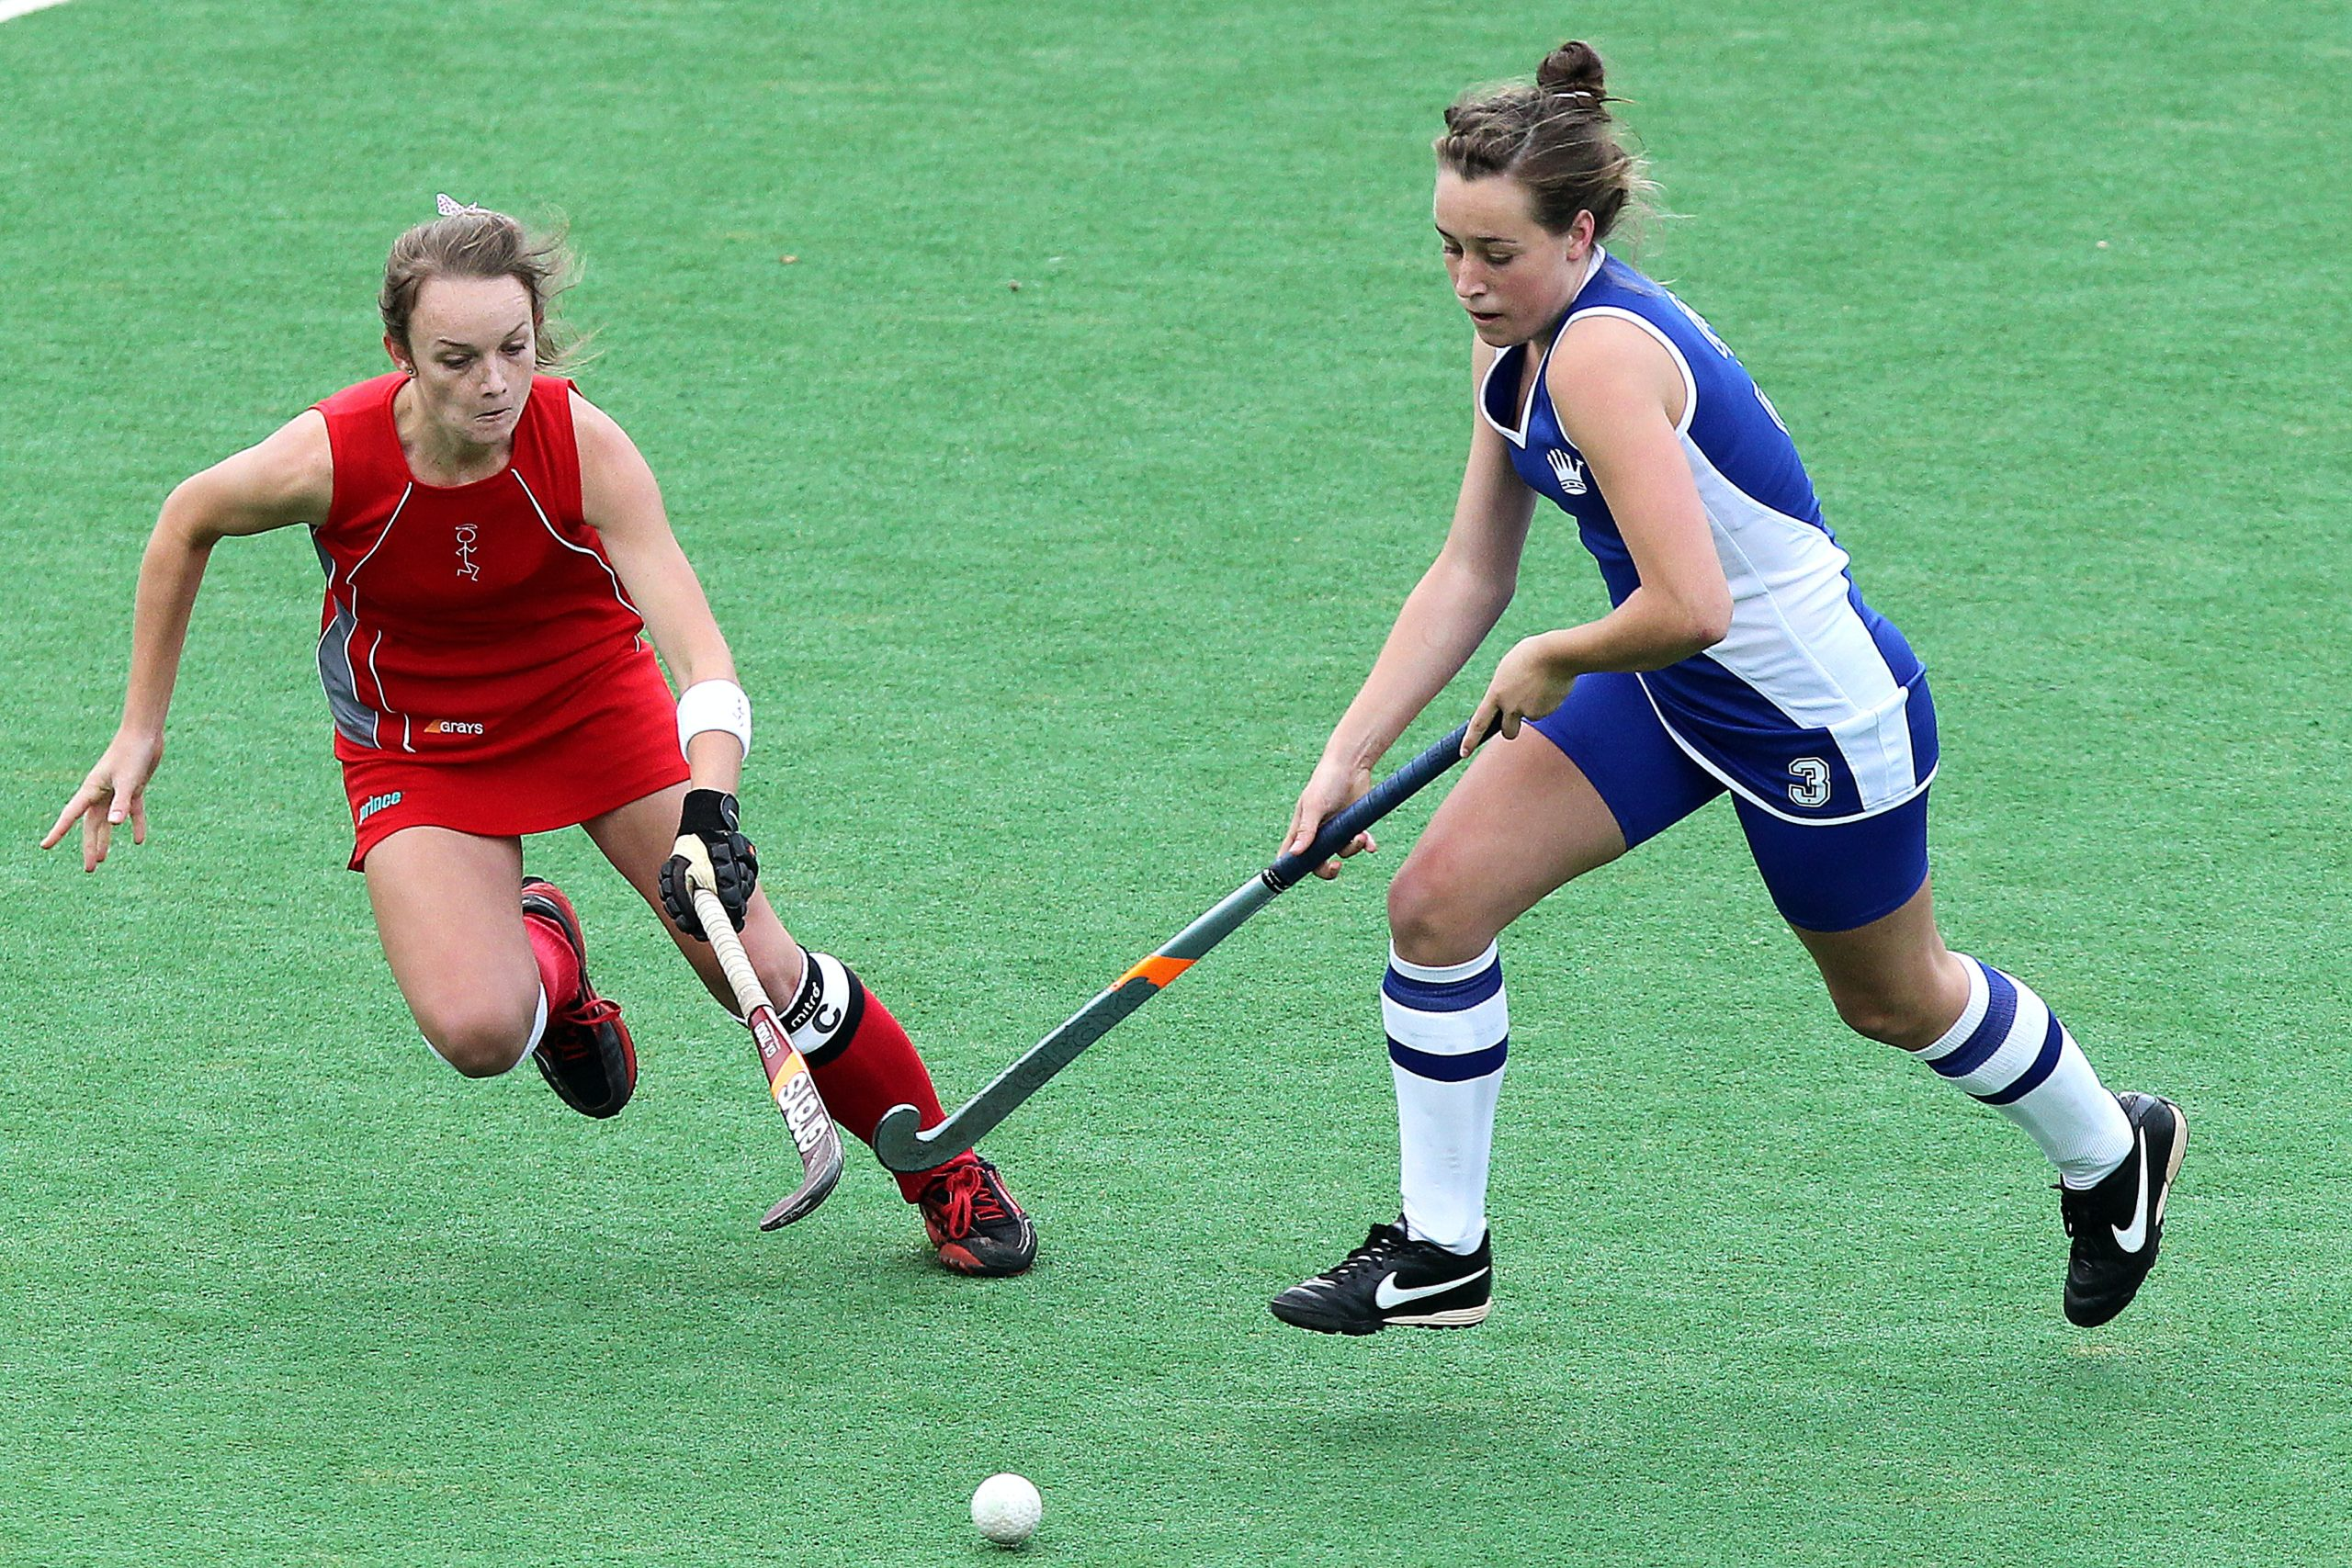 Field Hockey: Rules, Equipment, And More